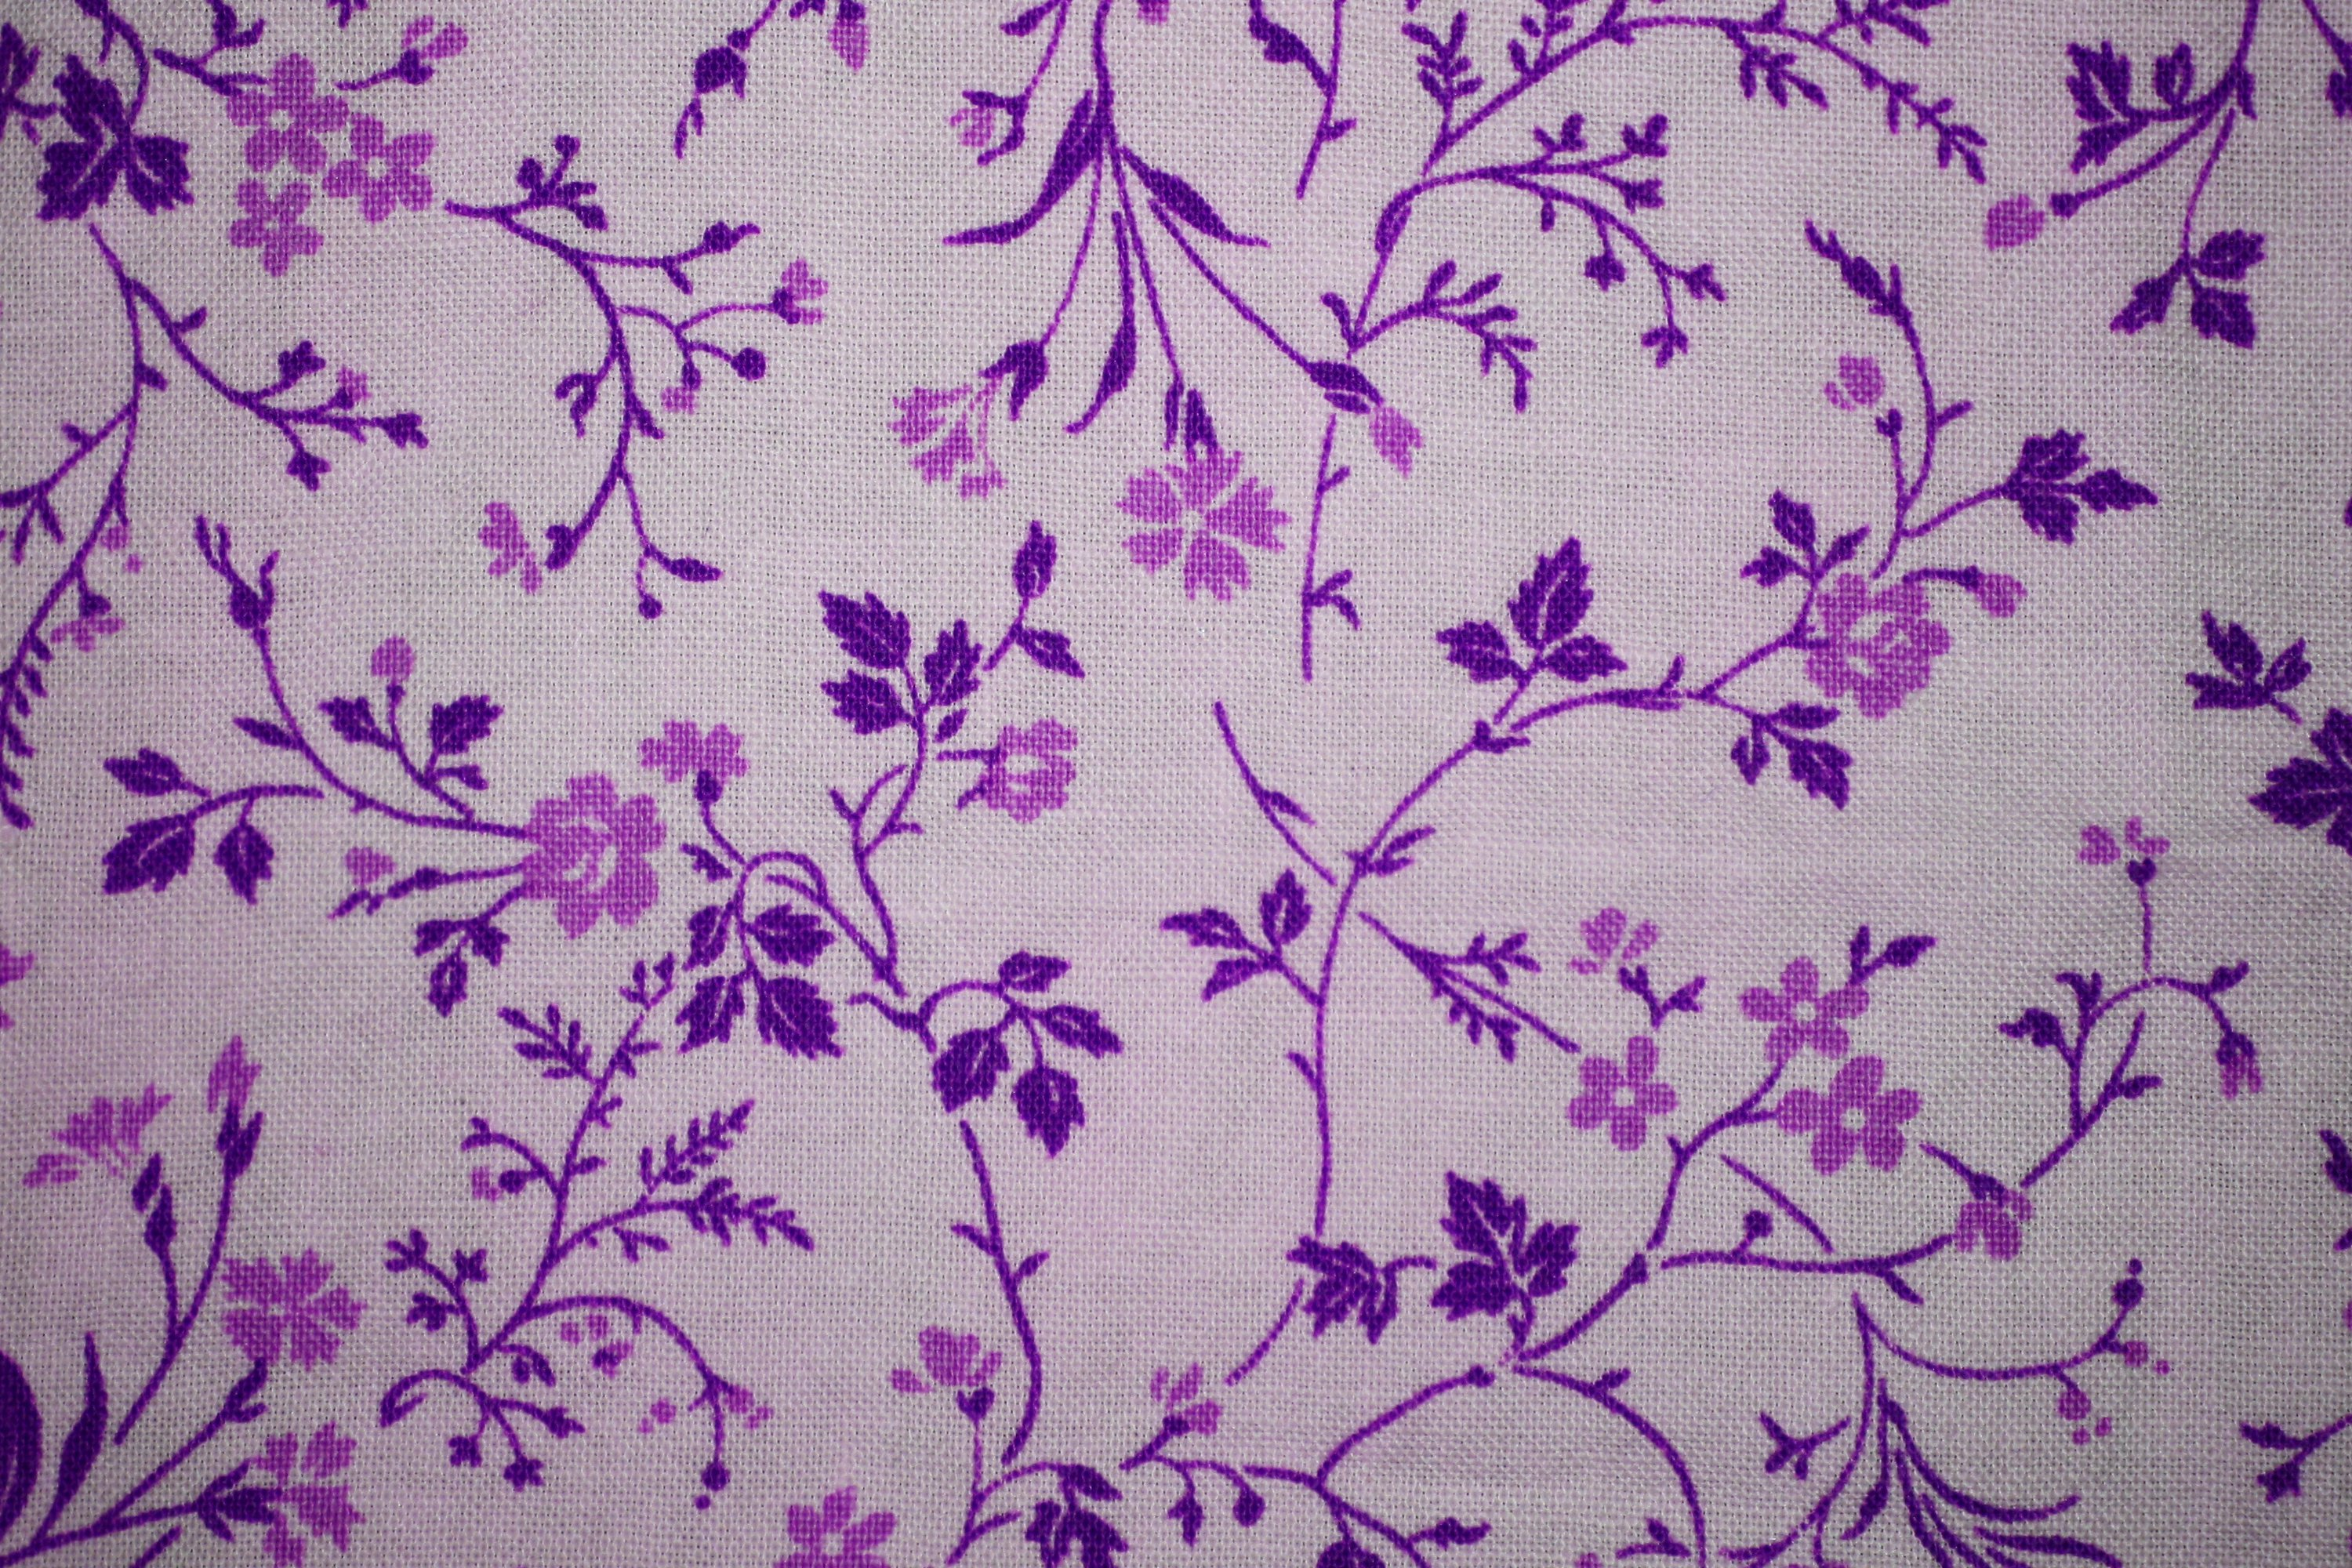 purple on white floral print fabric texture picture free